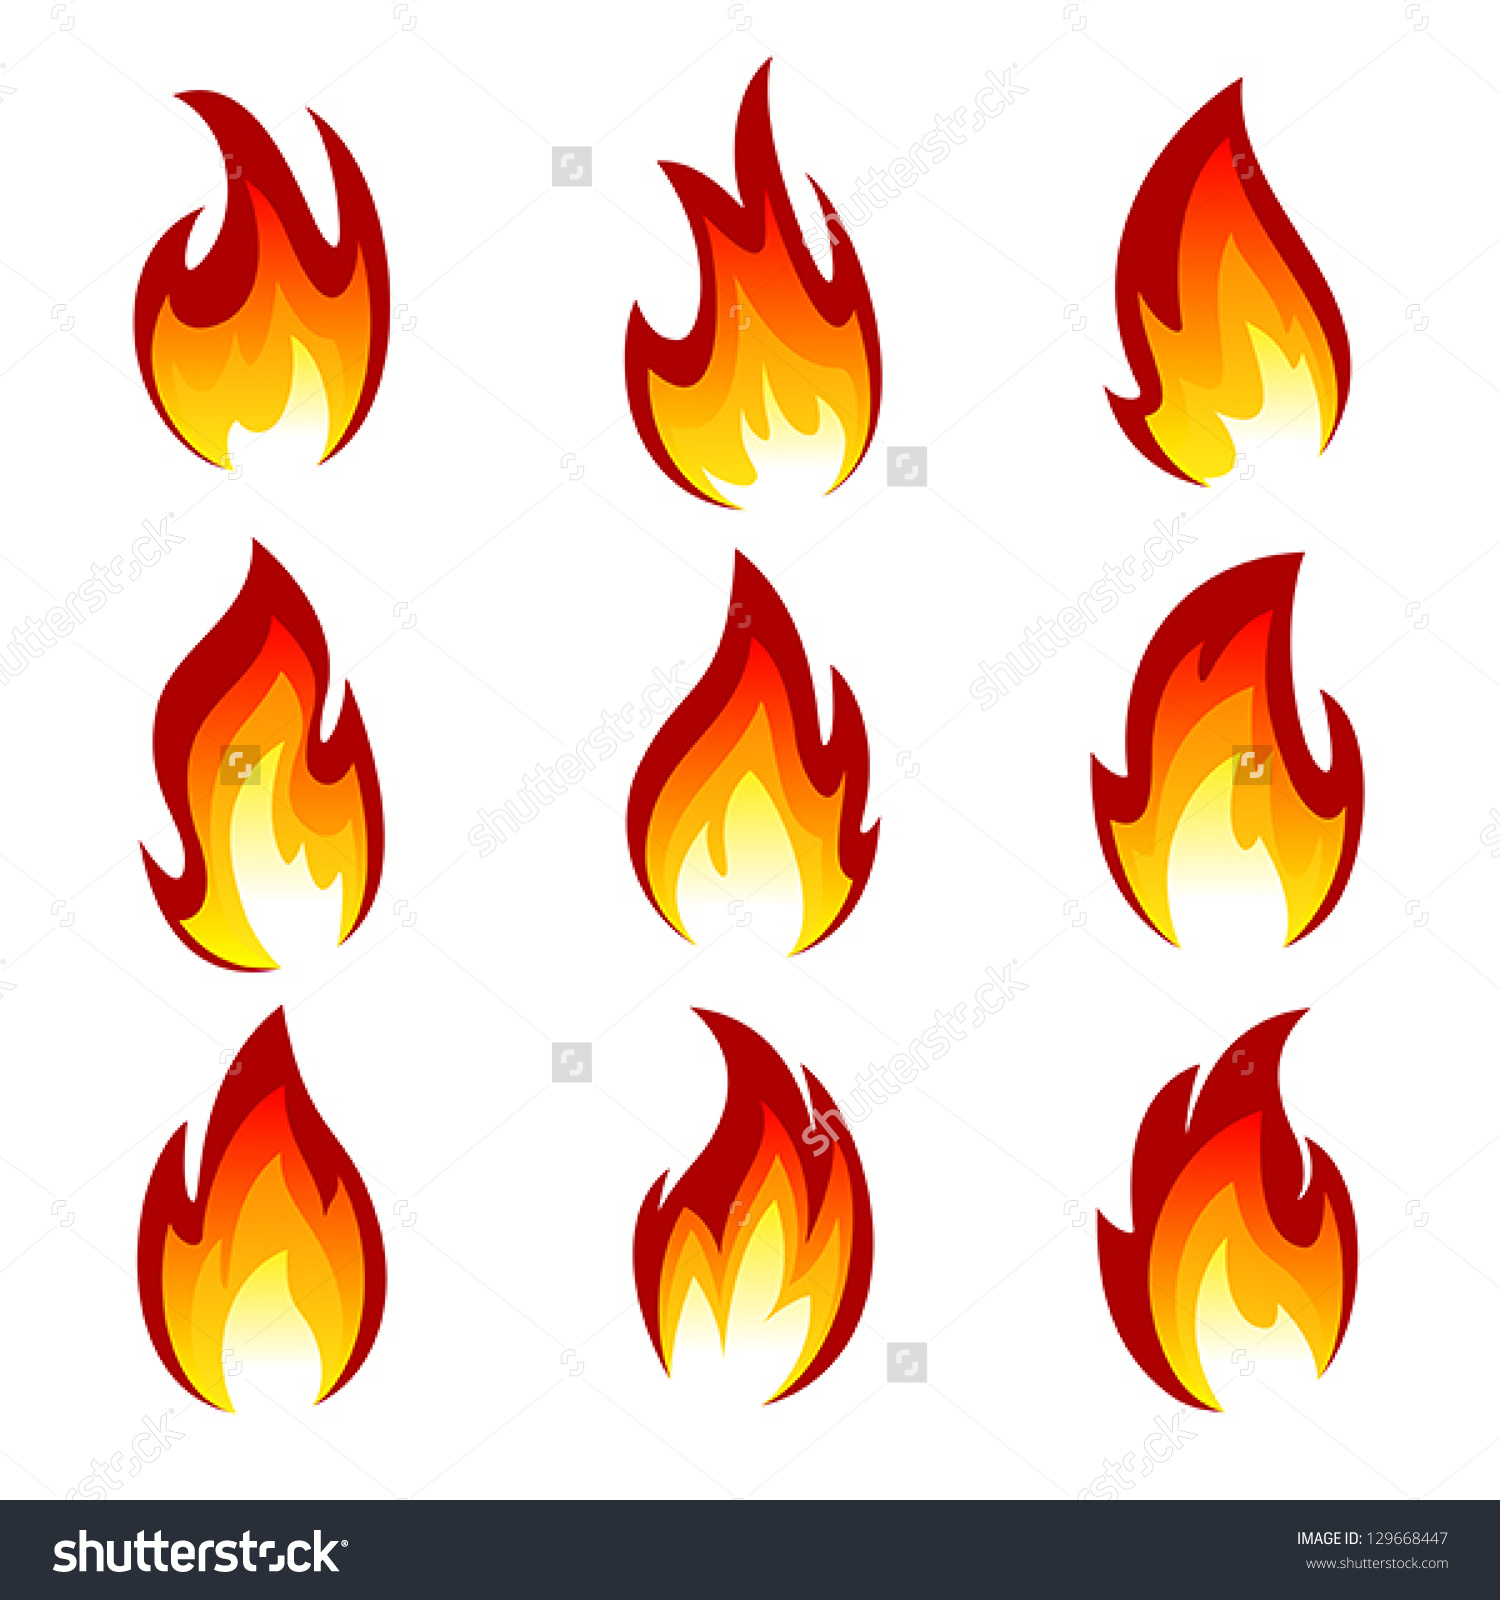 Nice wallpapers Flames 1500x1600px